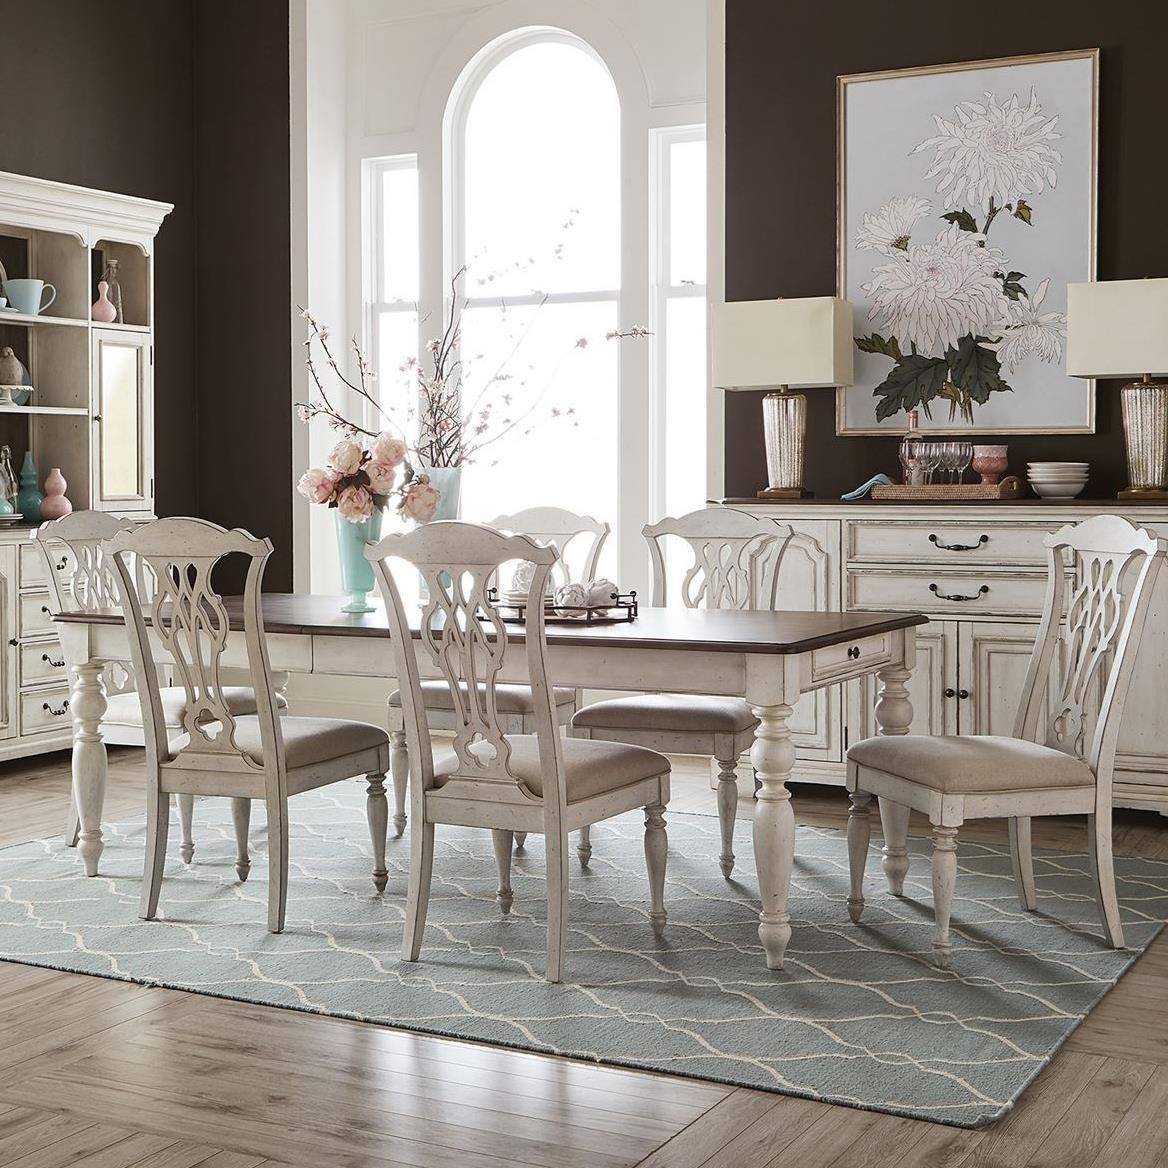 Traditional 7-Piece Rectangular Table Set with Storage and Splat Back Chairs